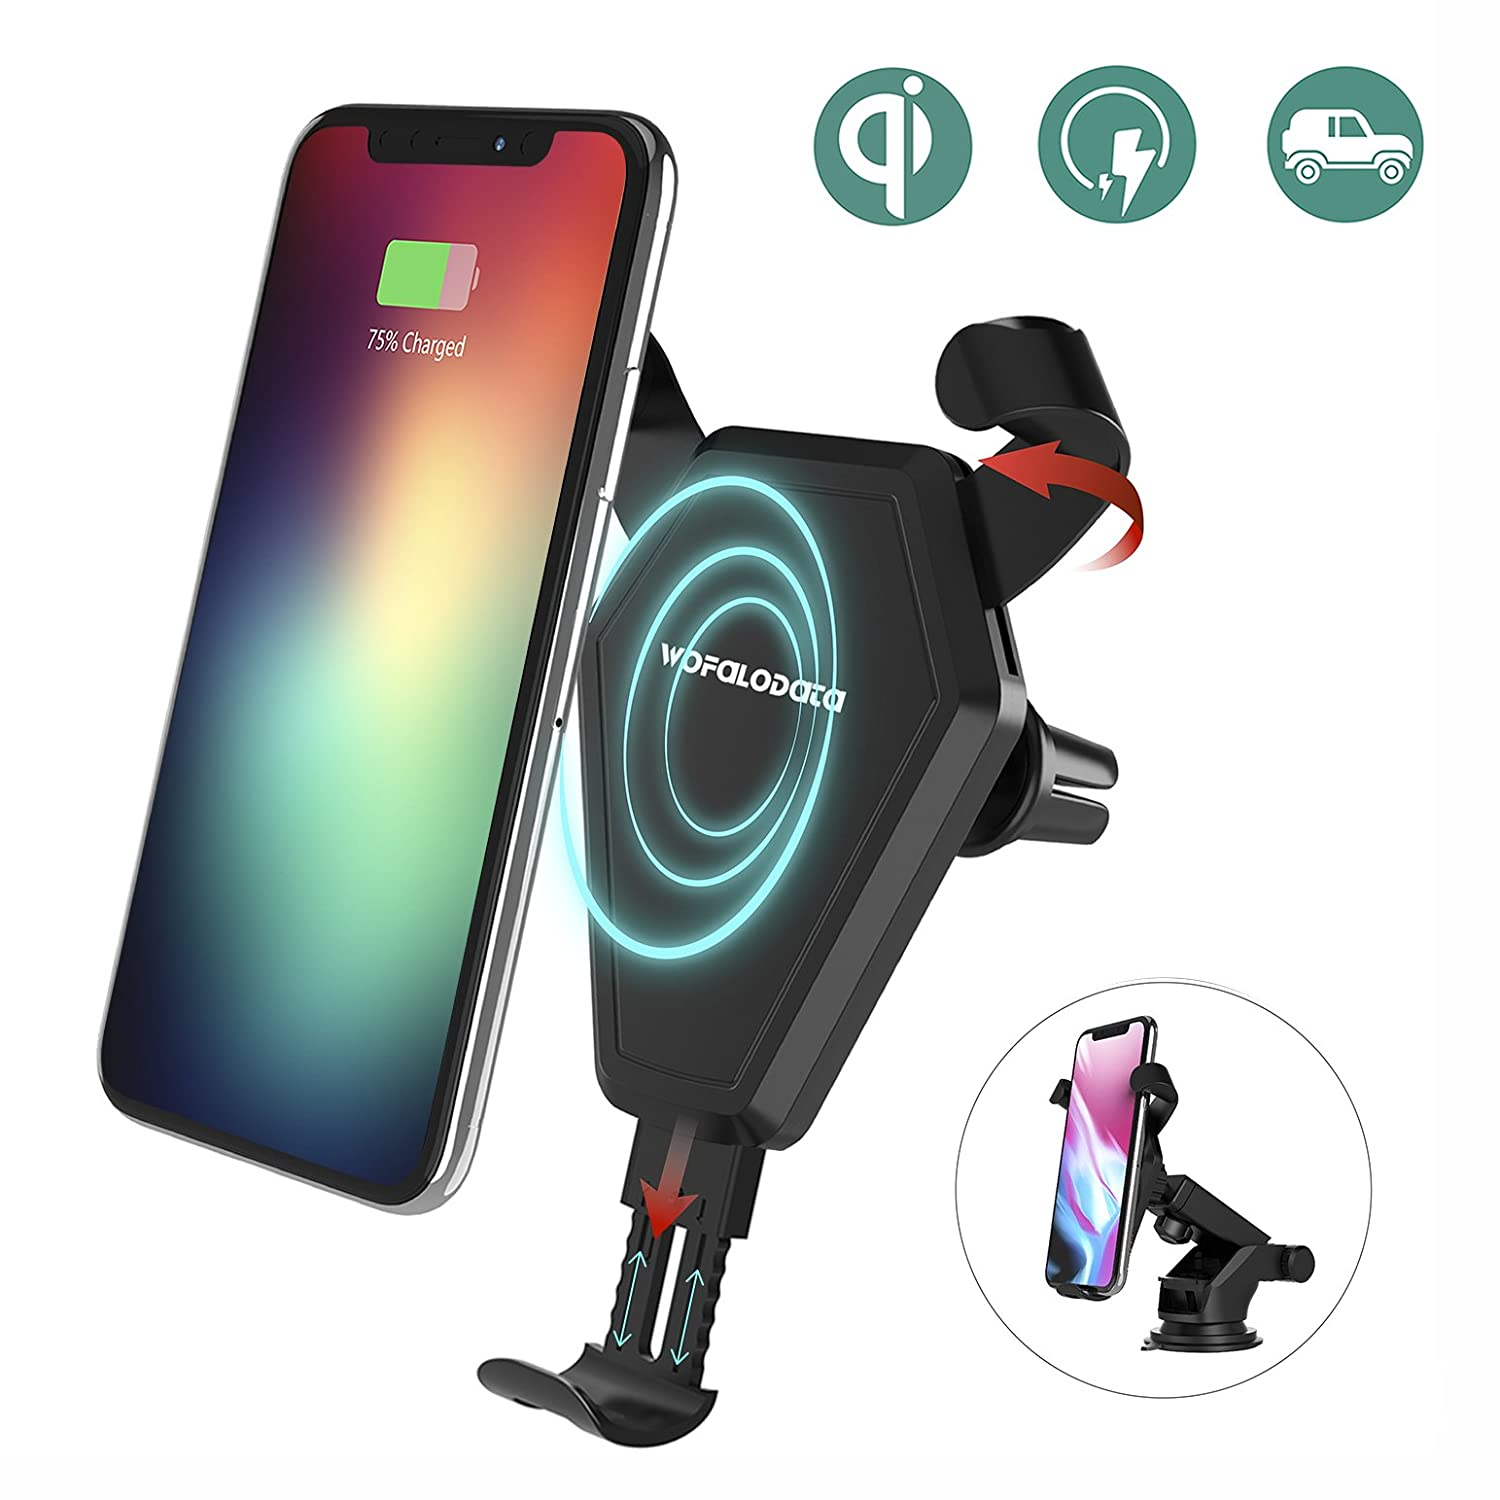 Galaxy Note 8 Car Mount QI Wireless Charger Stand